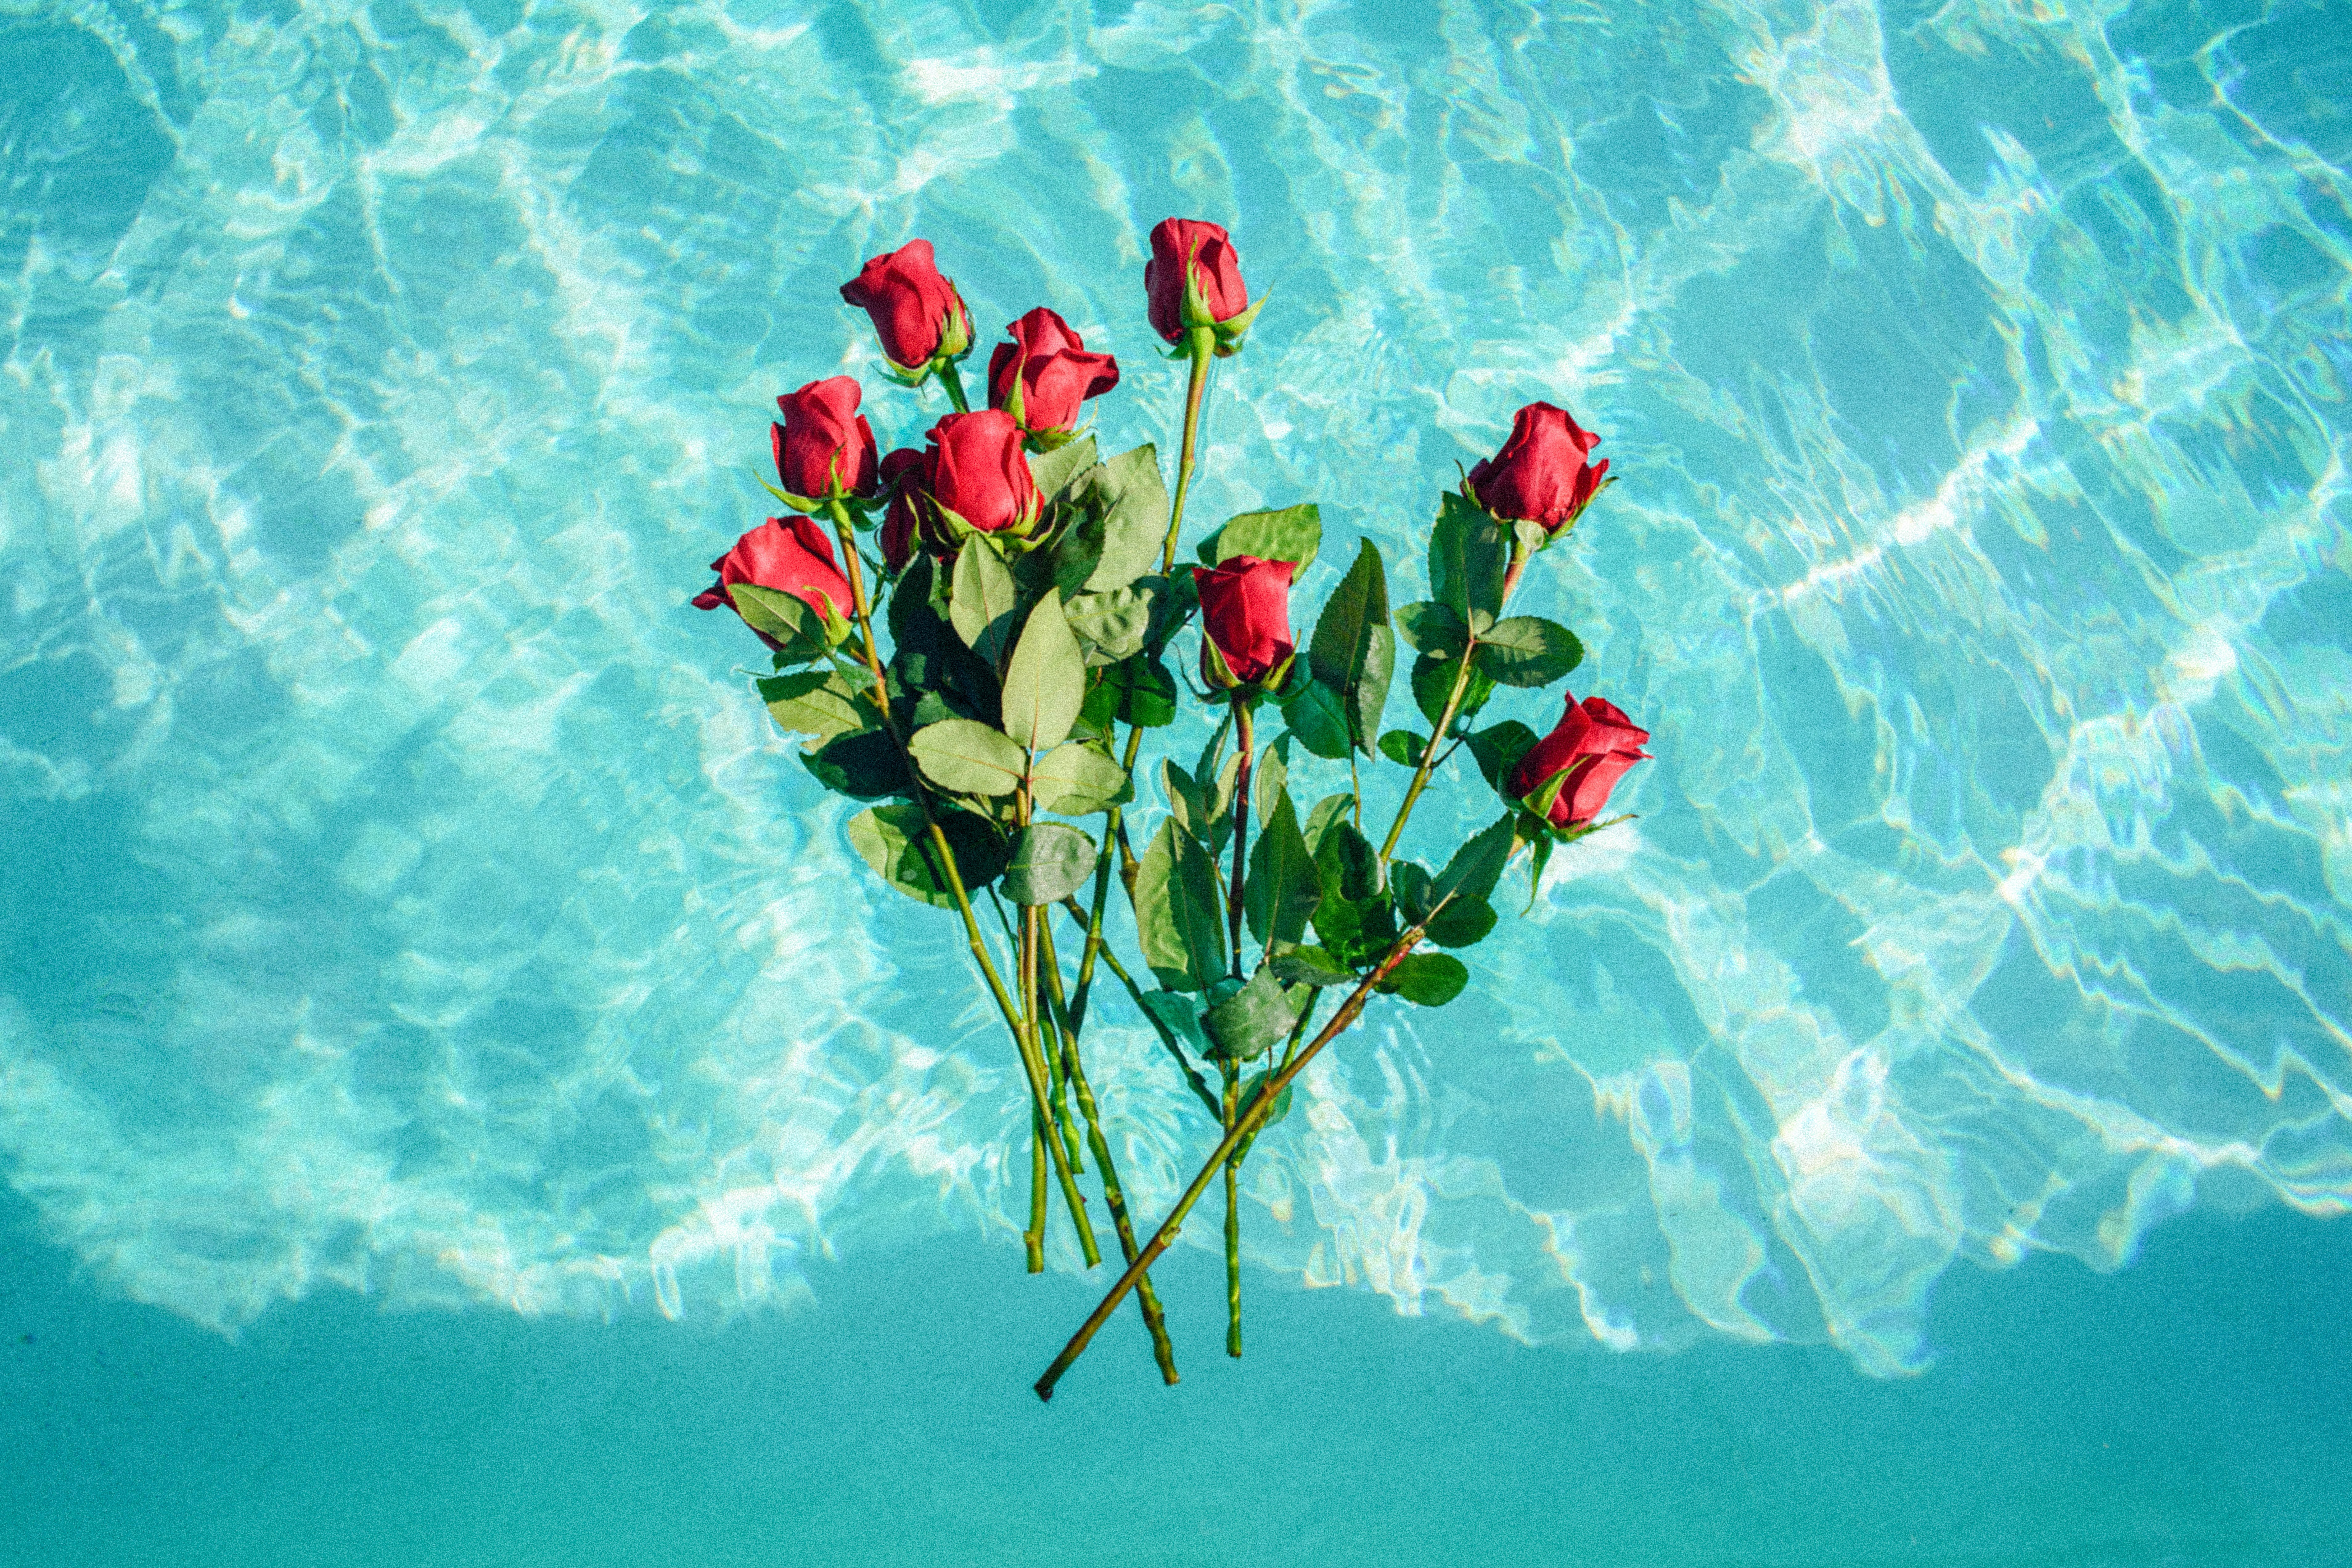 red roses on teal background